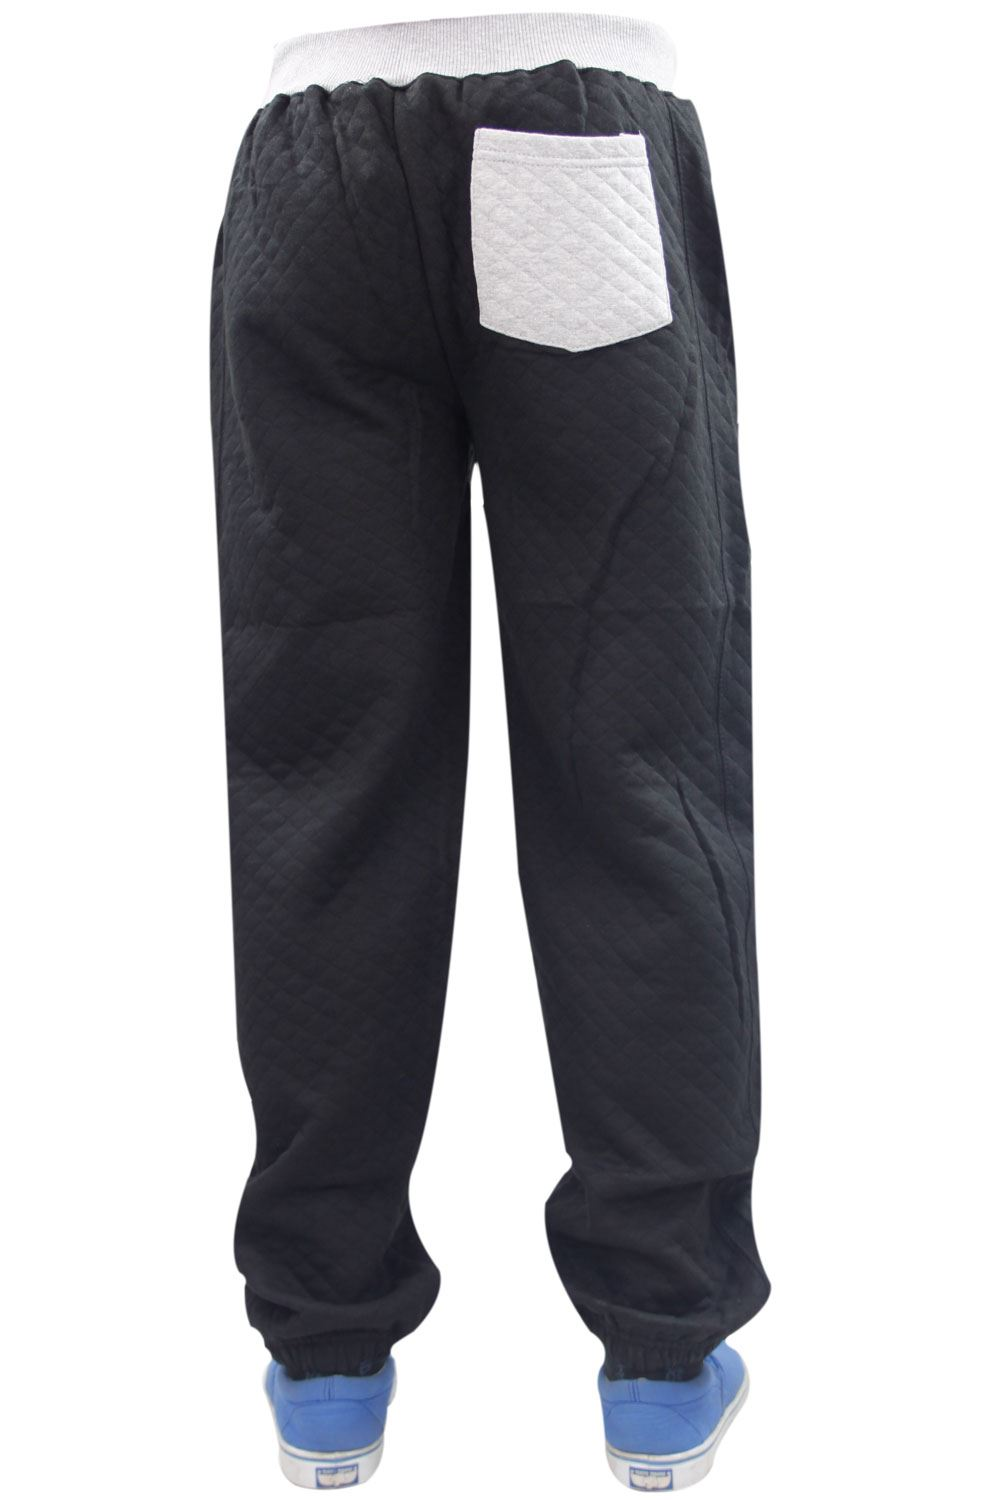 You will get a great level of comfort whilst still remaining cool and dry. We have great brands like Nike, Puma, Canterbury and adidas tracksuit bottoms available, so why not take a browse through. You'll also find track pants, sweatpants, official training pants from Chelsea, Liverpool, Man Utd, Arsenal, Tottenham Hotspur, Barcelona and more.